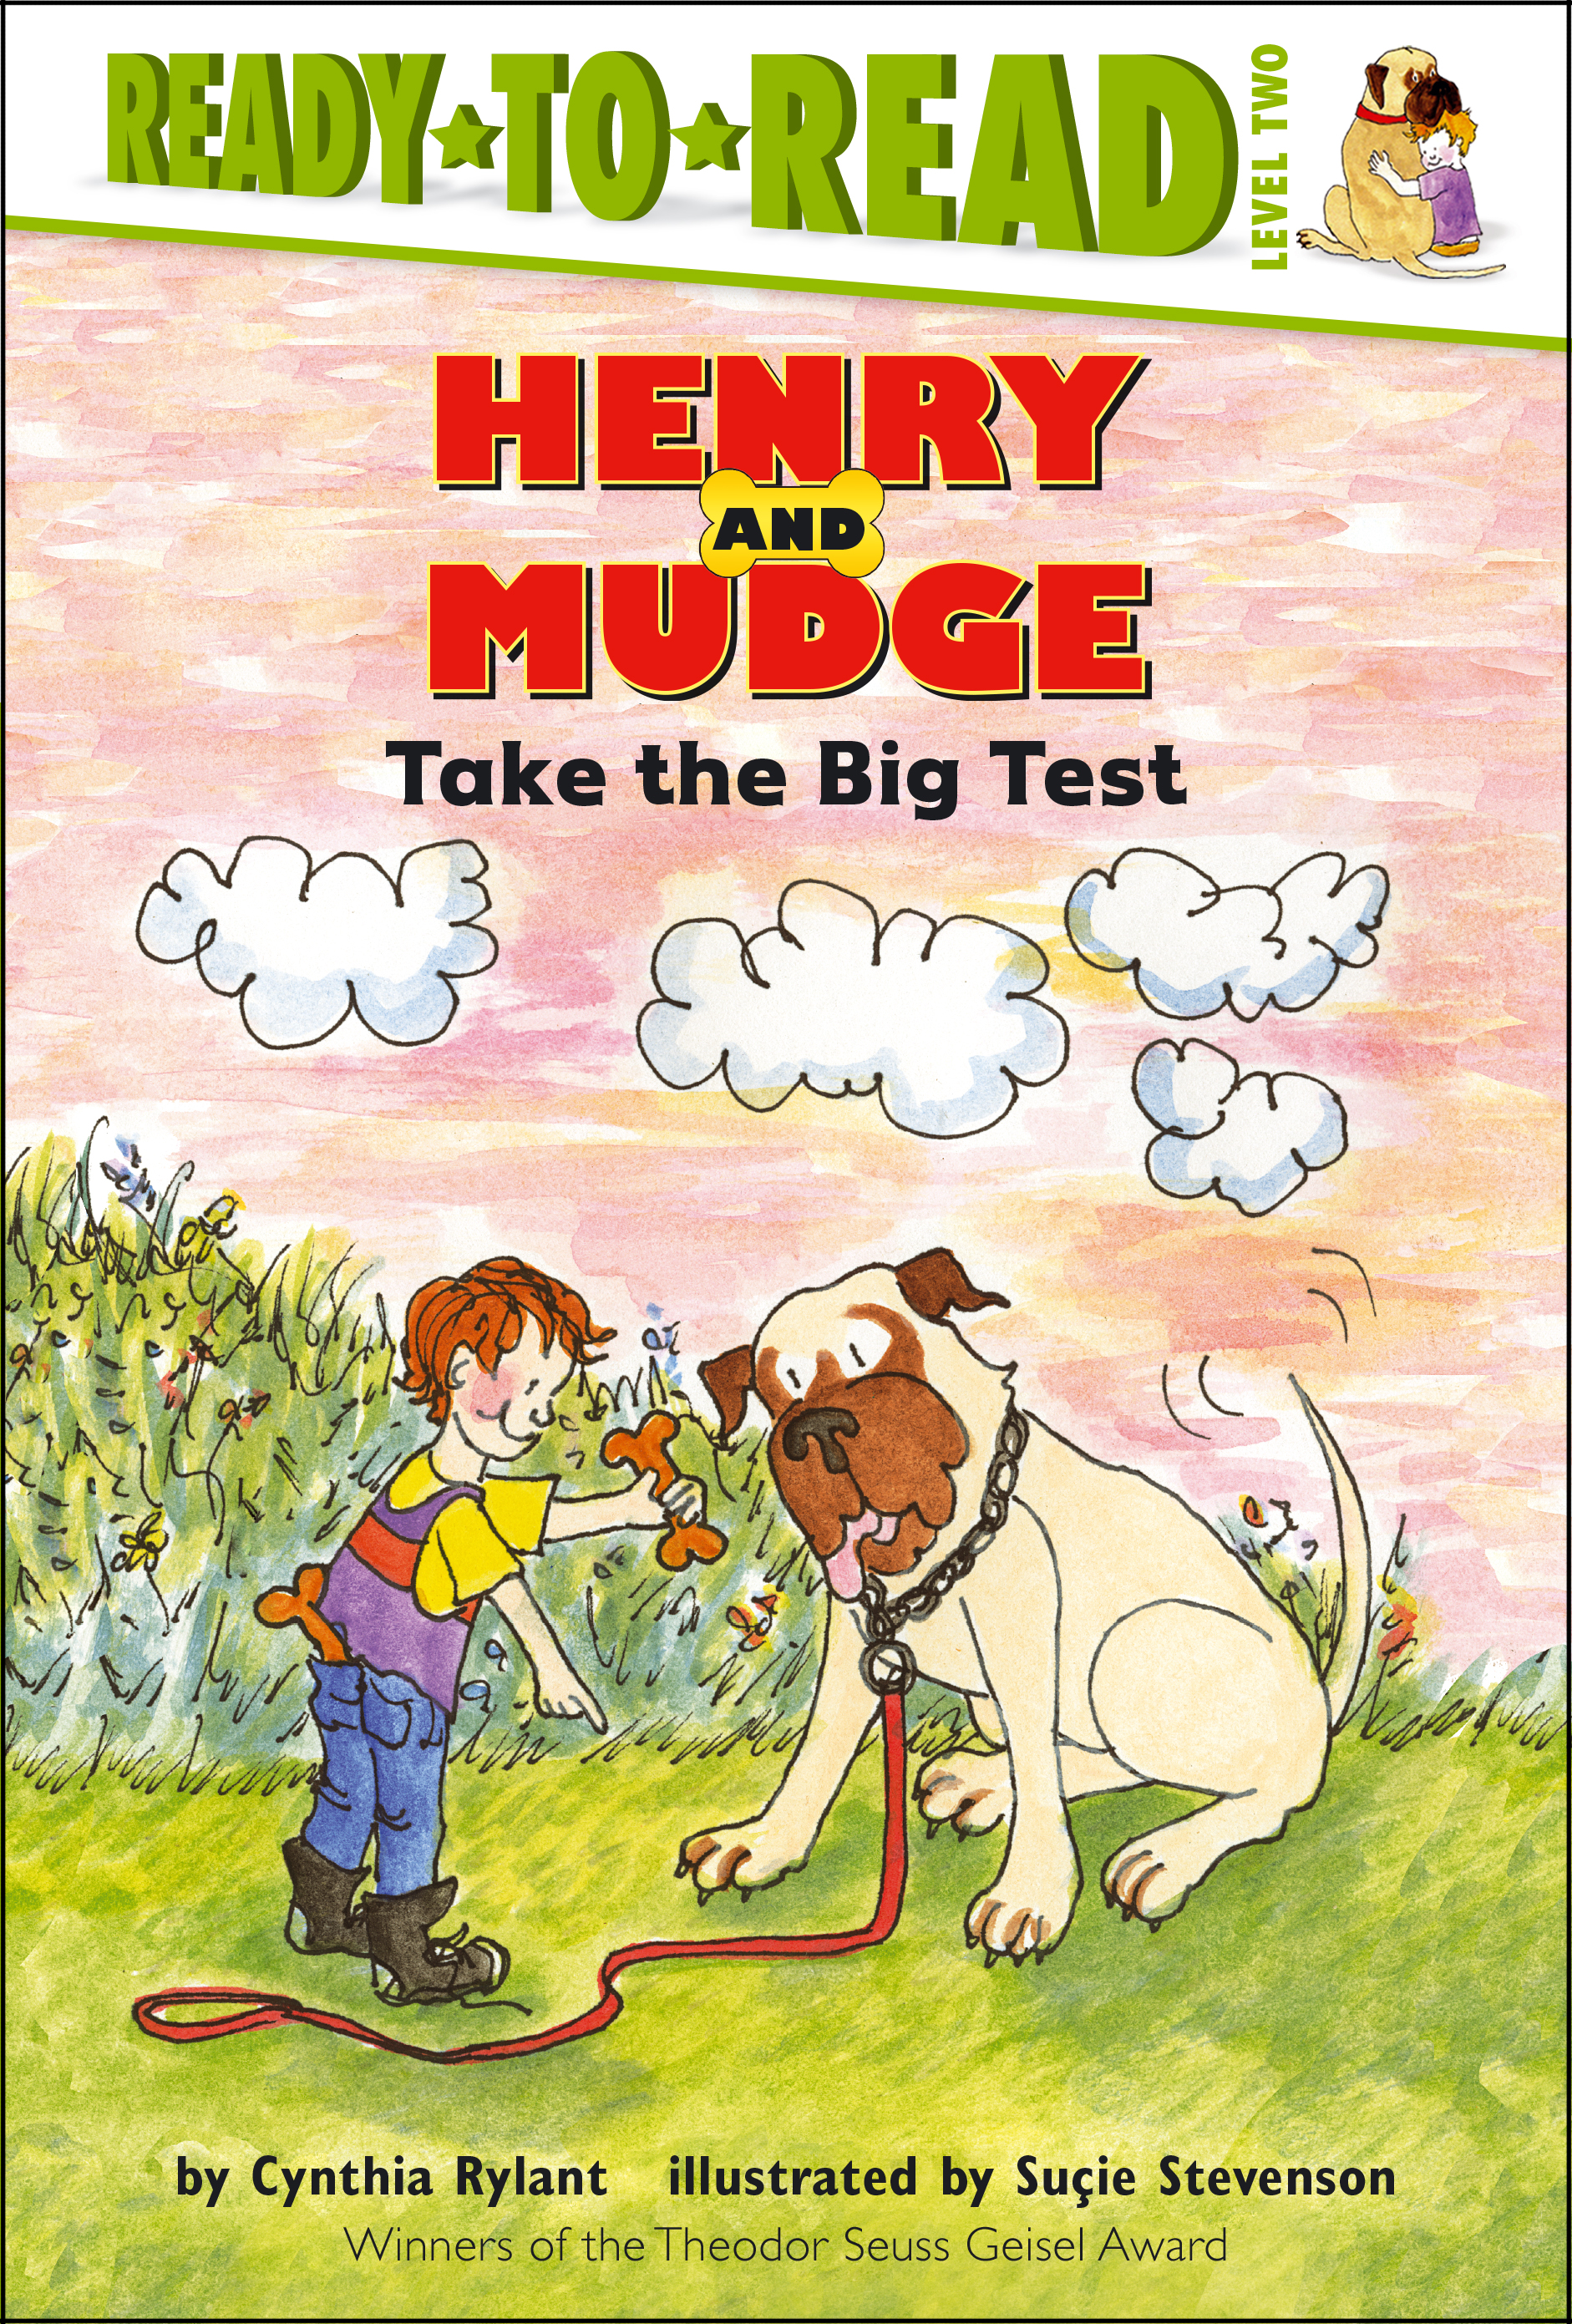 Book Cover Image (jpg): Henry and Mudge Take the Big Test